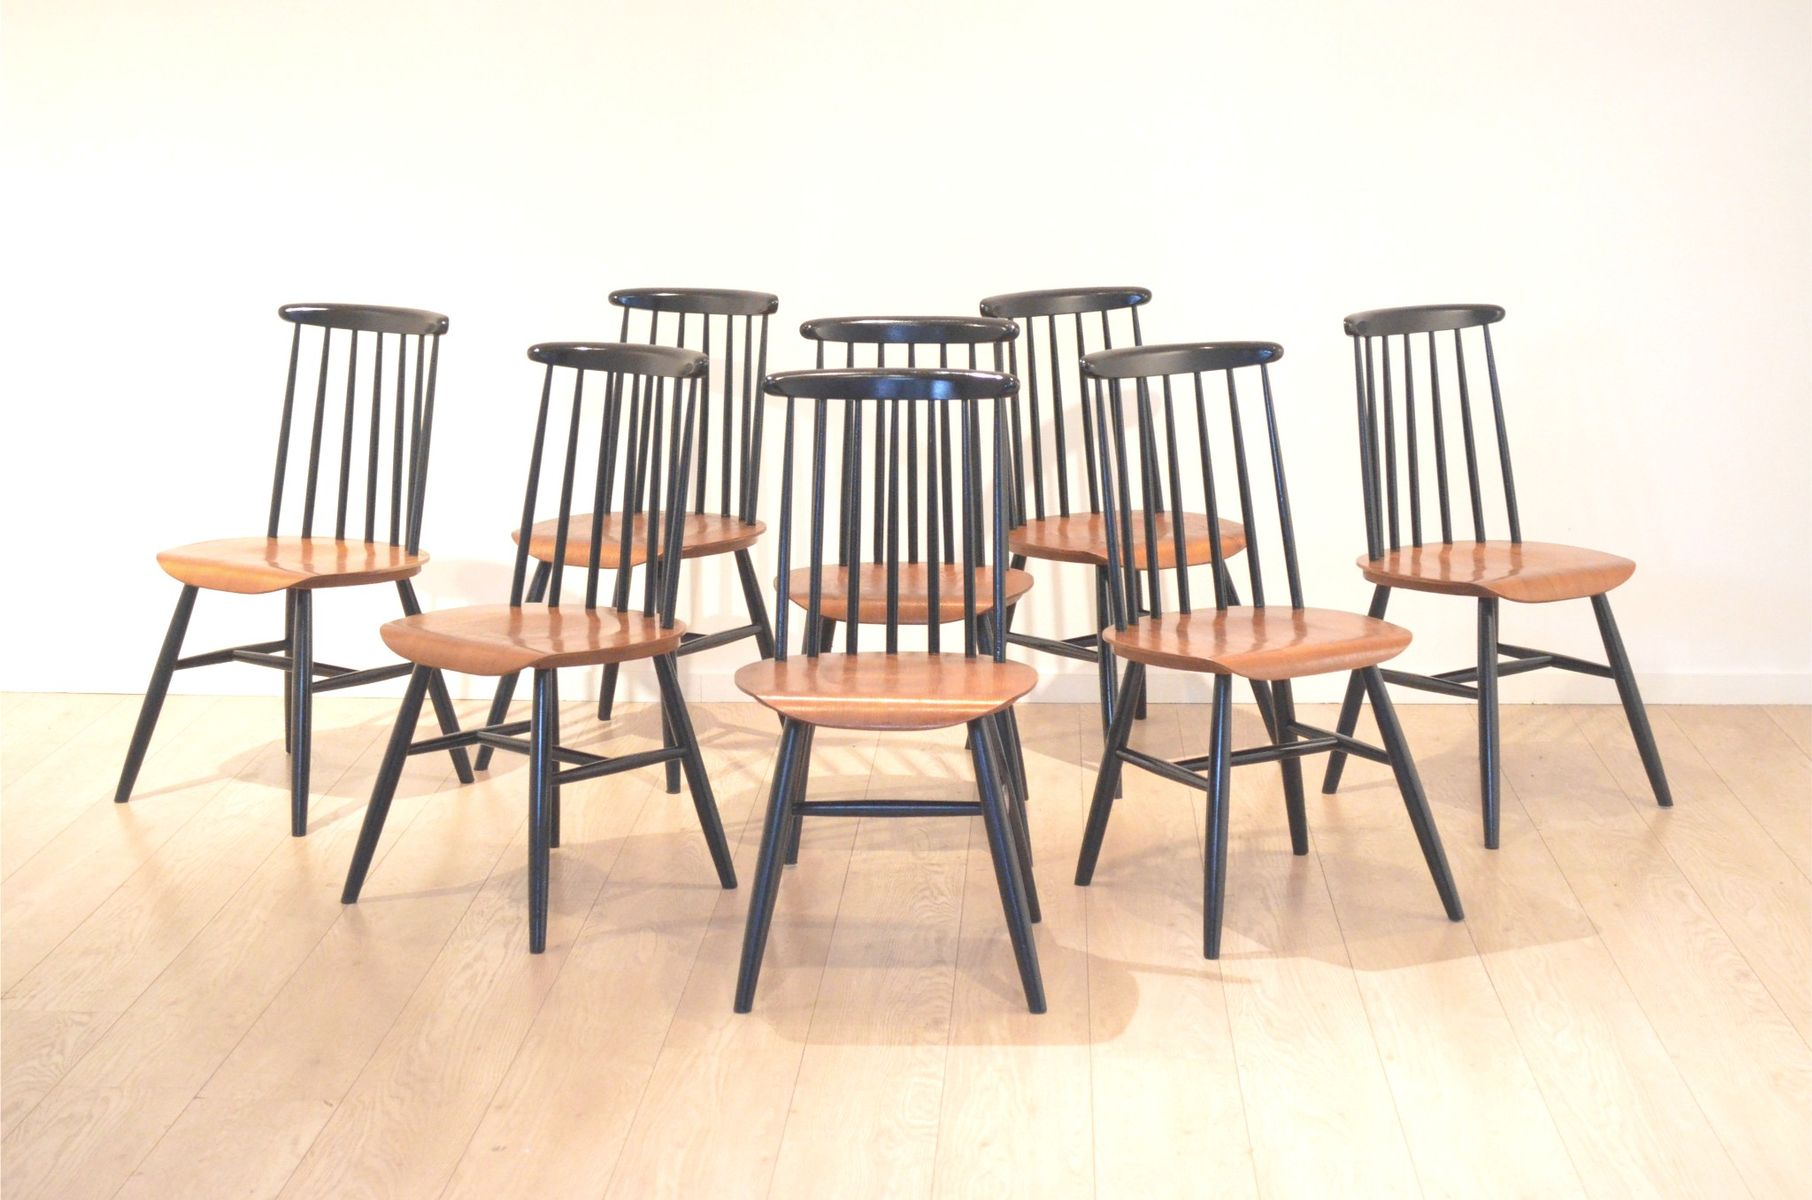 vintage fanett black teak dining chairs by ilmari tapiovaara set of 8 for sale at pamono. Black Bedroom Furniture Sets. Home Design Ideas